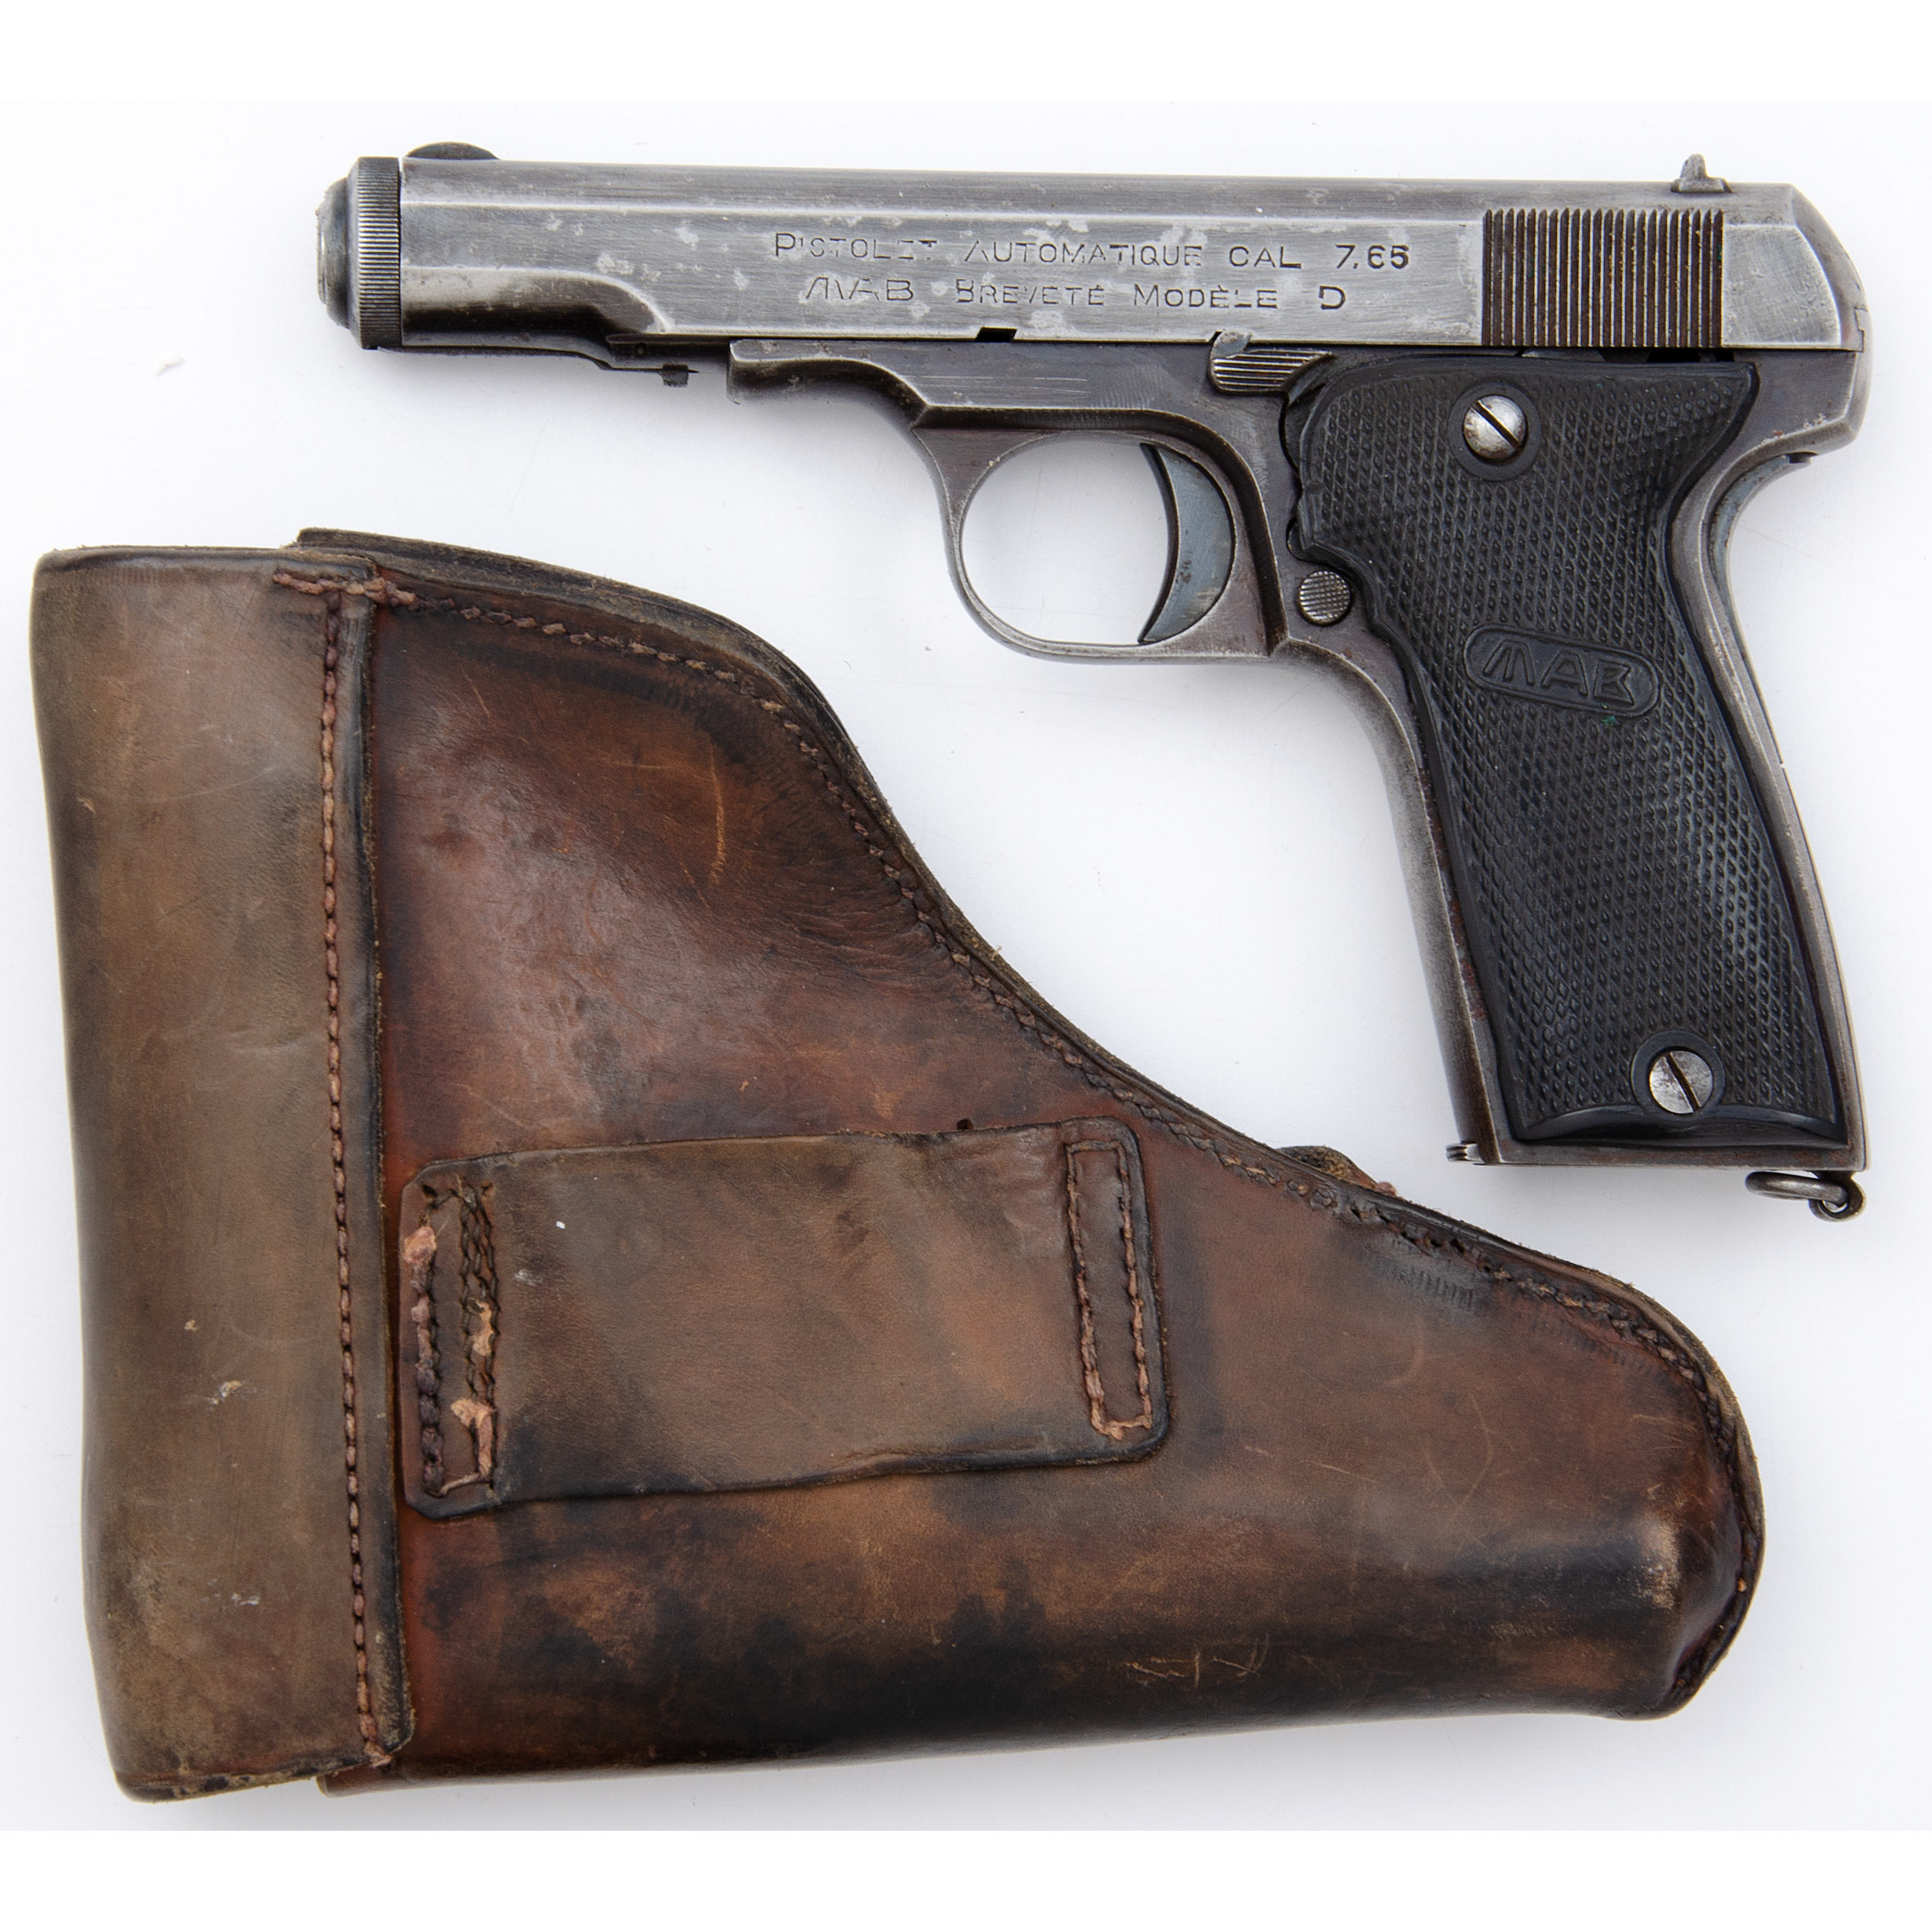 Nazi Marked French Mab Model D Pistol With Holster Cowan S Auction House The Midwest S Most Trusted Auction House Antiques Fine Art Art Appraisals